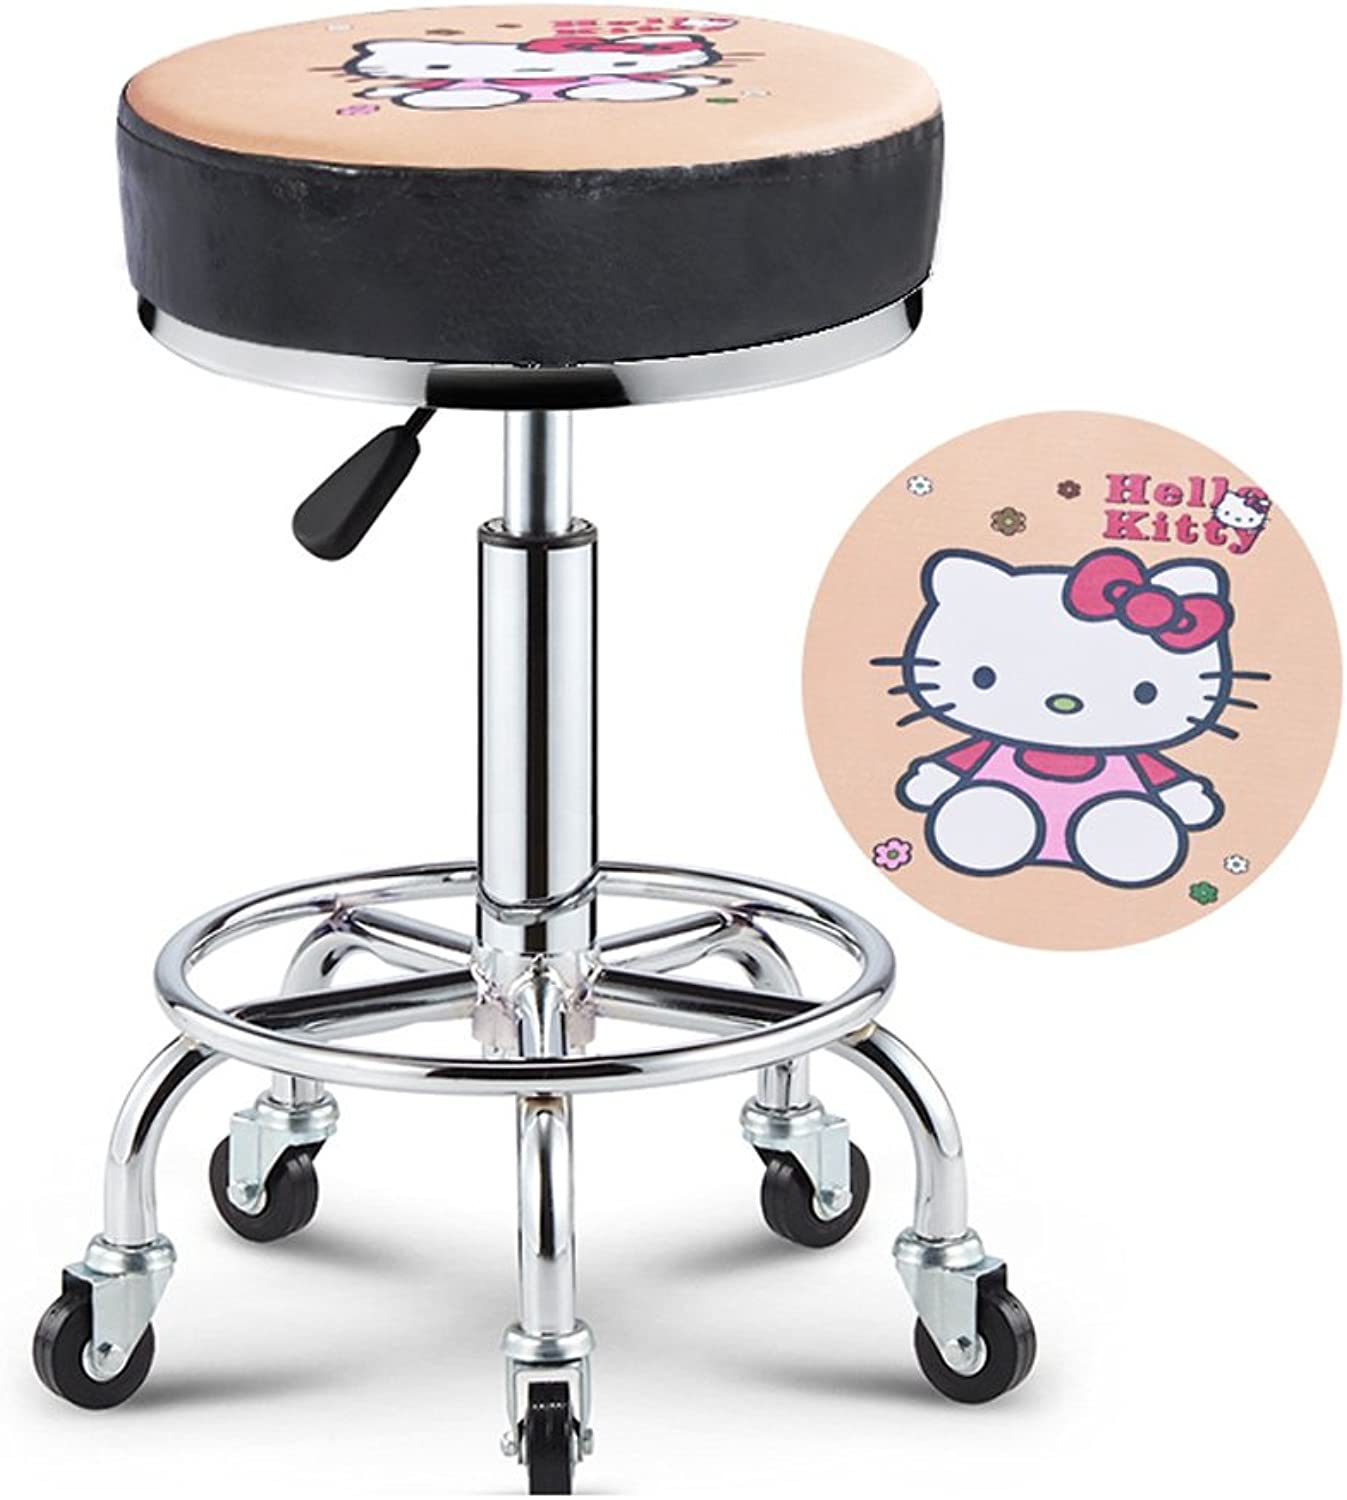 Swivel Stool Chair Adjustable Height,Heavy Duty Hydraulic Rolling Metal Stool for Kitchen,Salon,Bar,Office,Massage (Black) (color   2)